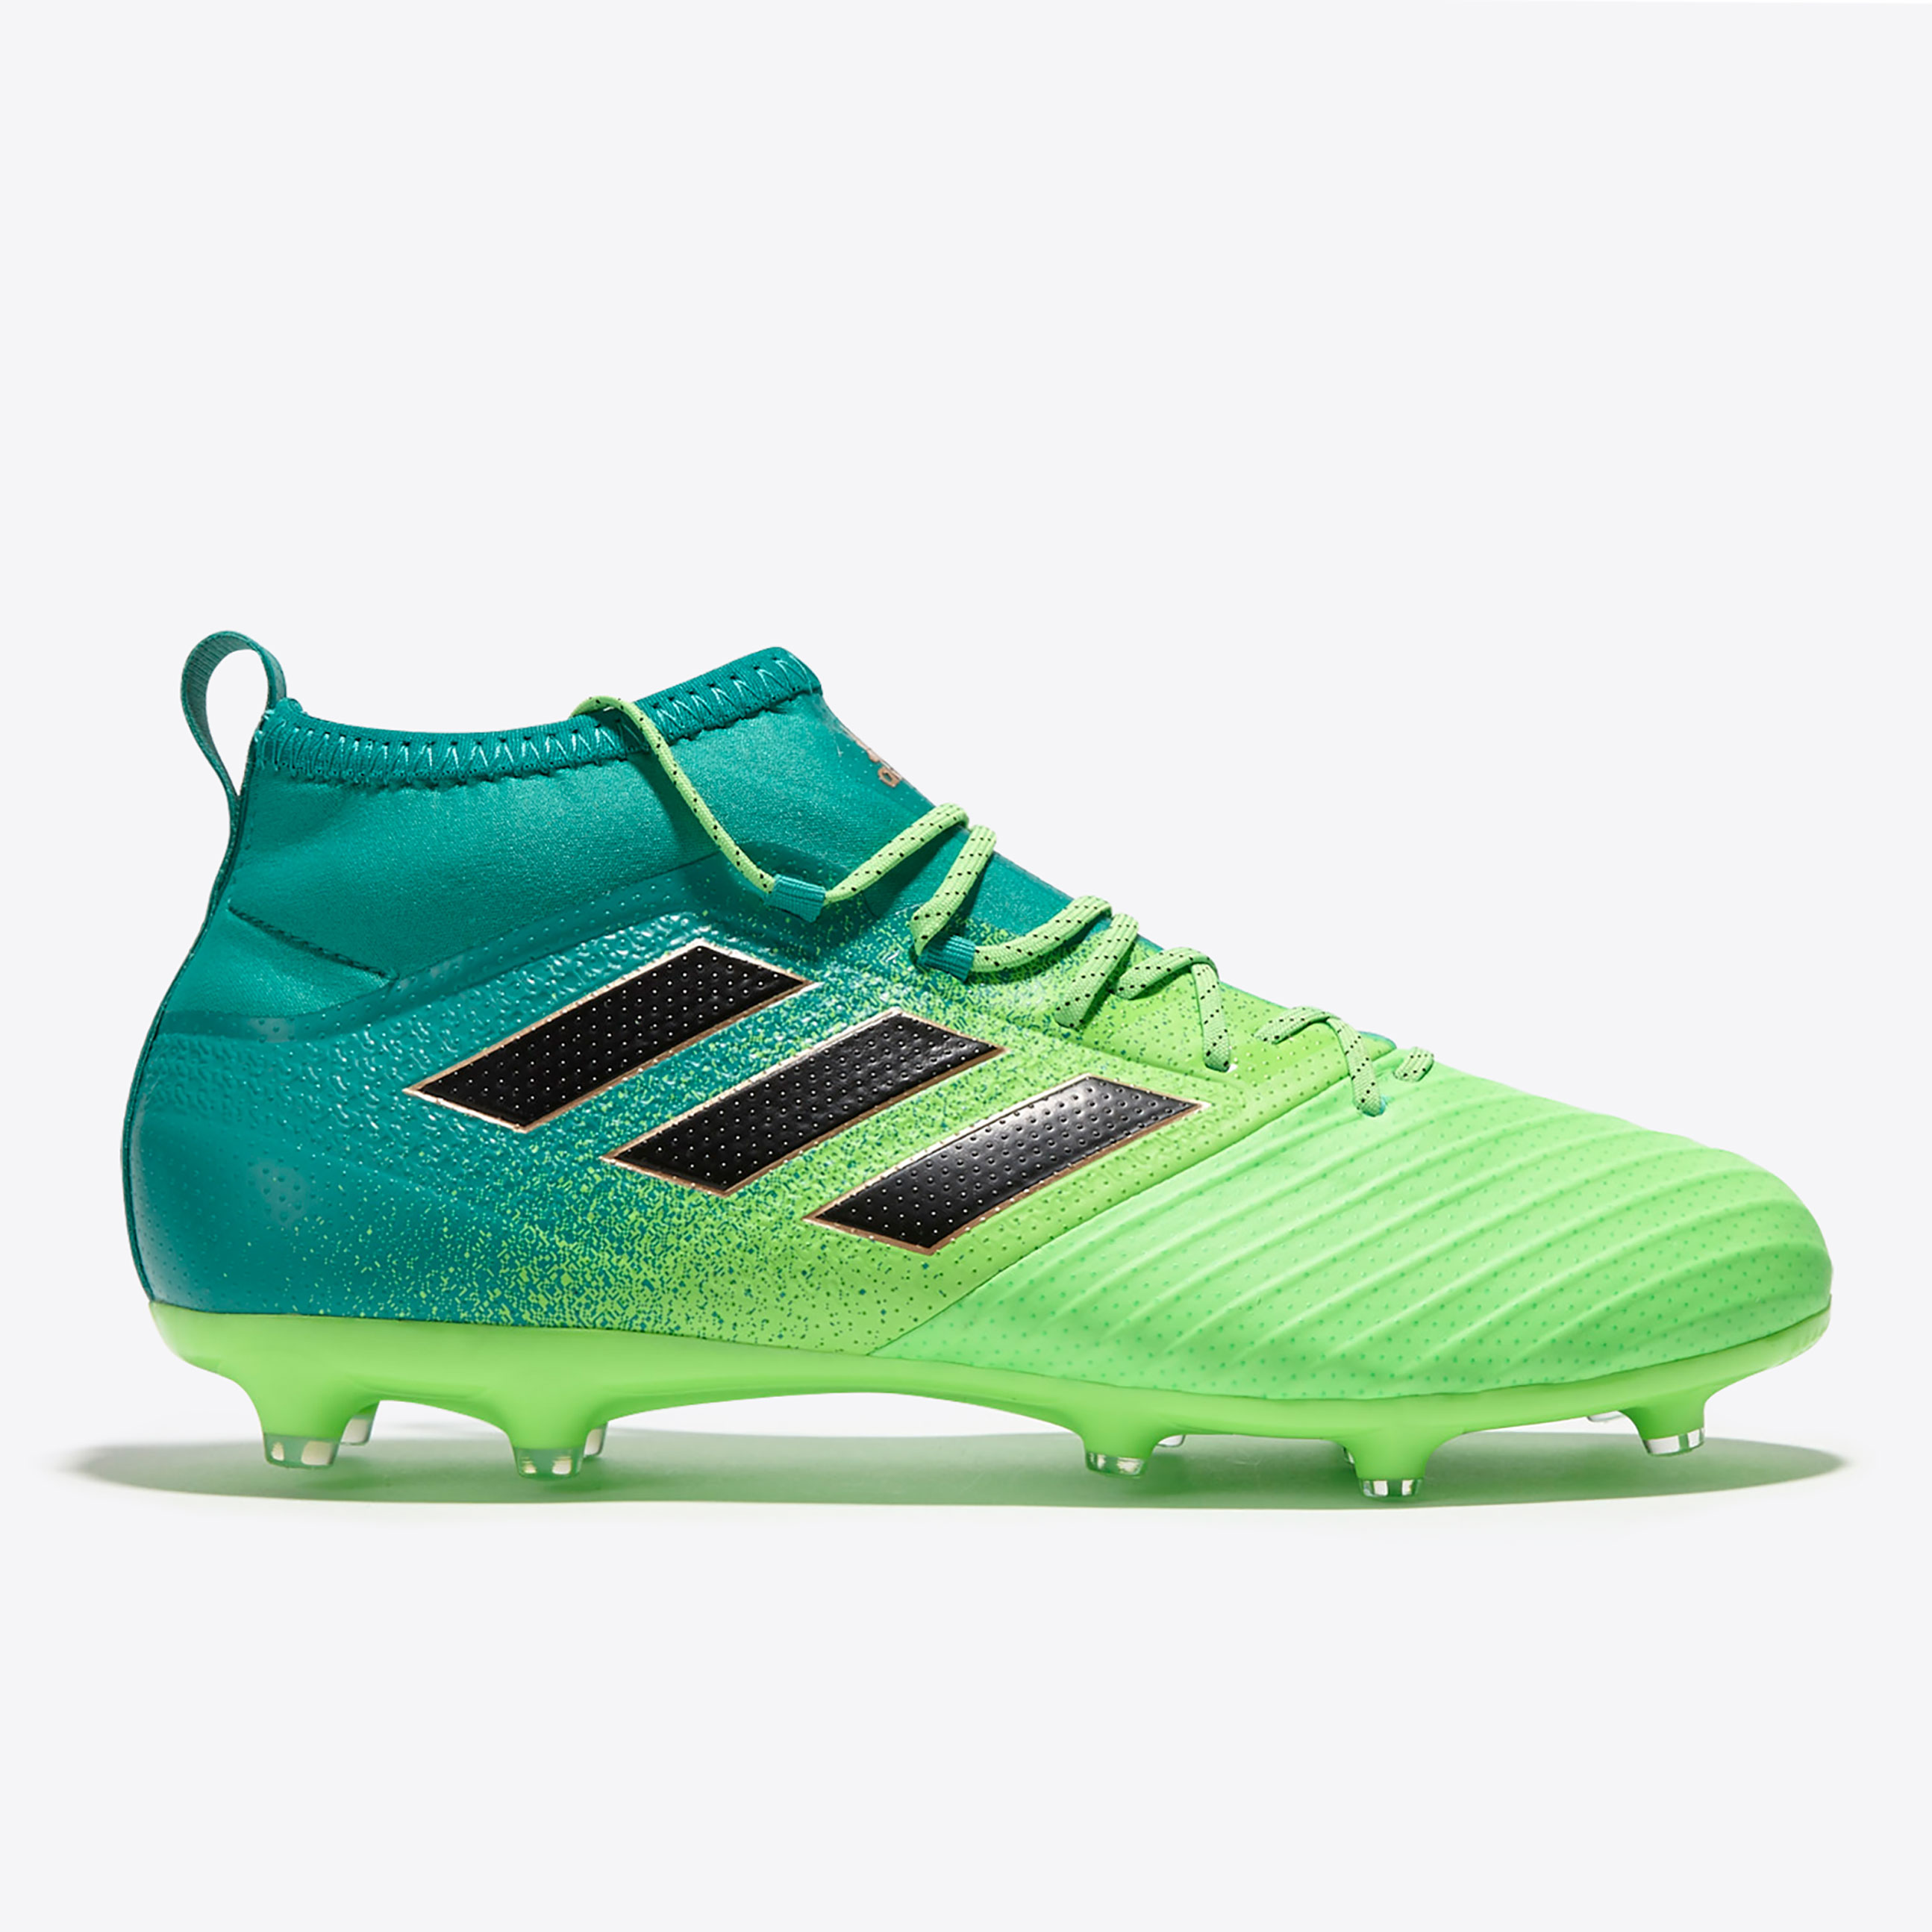 Image of adidas Ace 17.2 Primemesh Firm Ground Football Boots - Solar Green/Cor